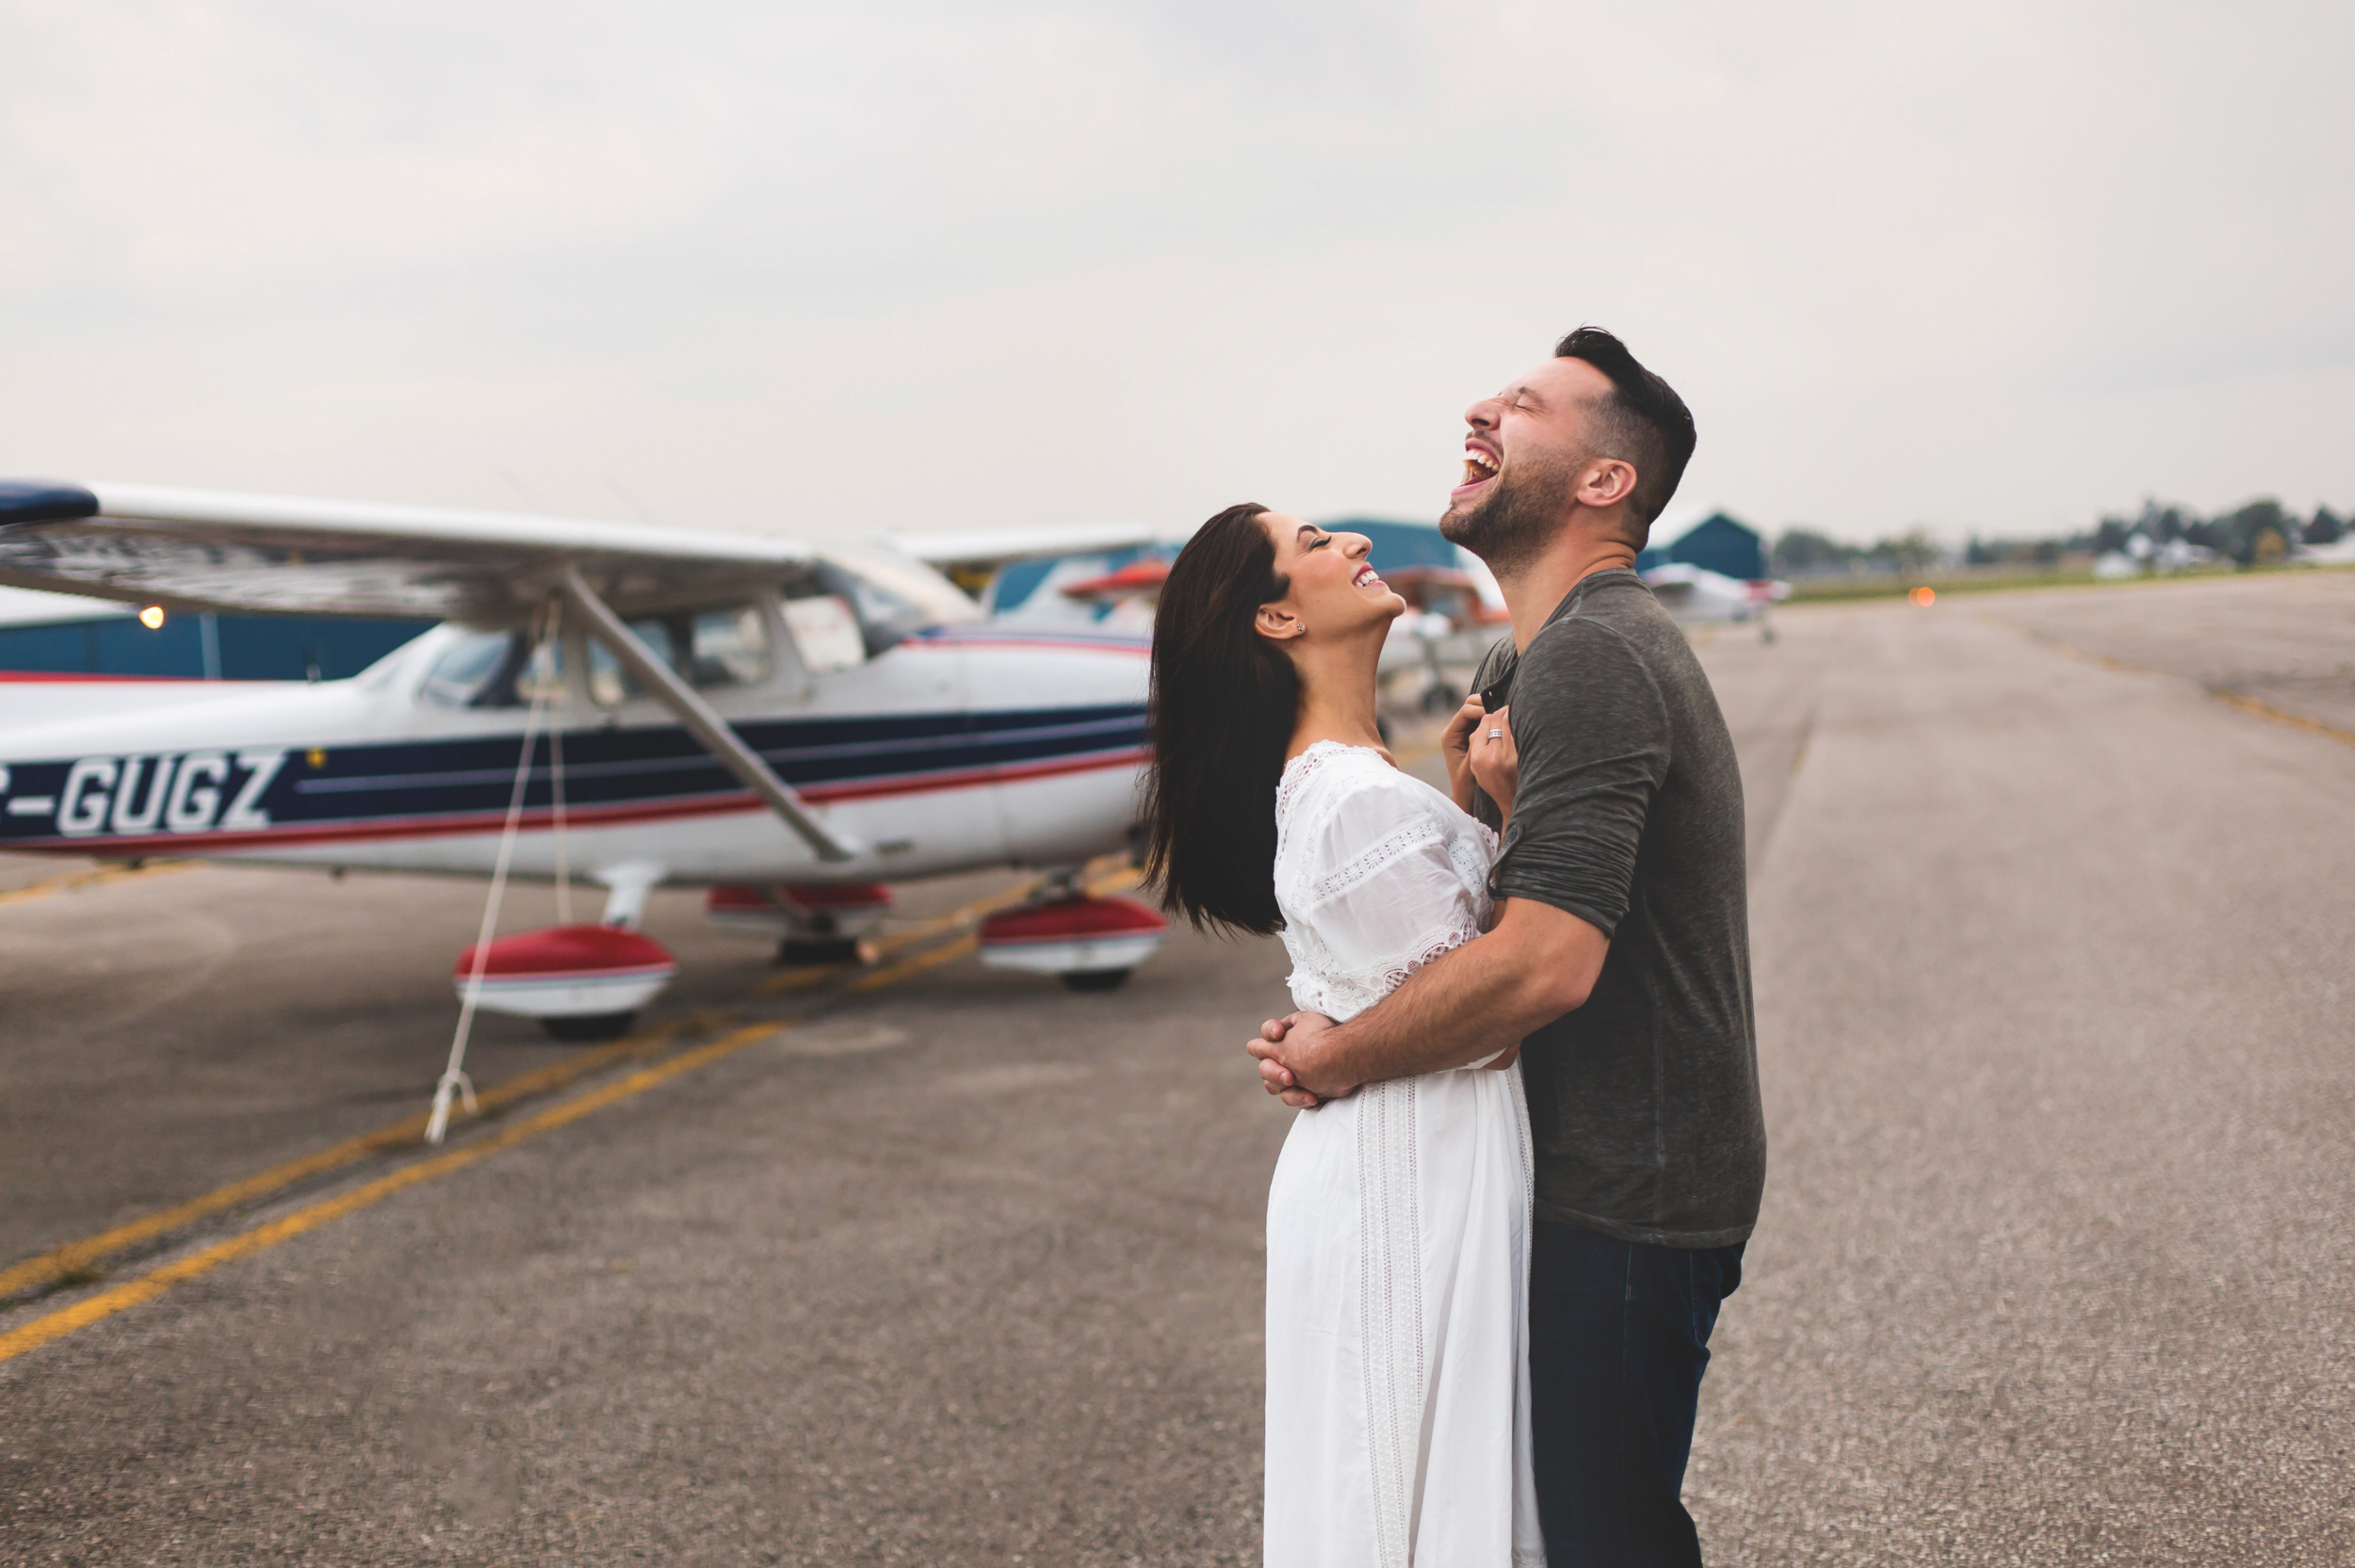 Engagement-Session-Hamilton-Burlington-Oakville-Toronto-Niagara-Wedding-Photographer-Engaged-Photography-Brantford-Airport-HamOnt-Engaged-Moments-by-Lauren-Photo-Image-30.png